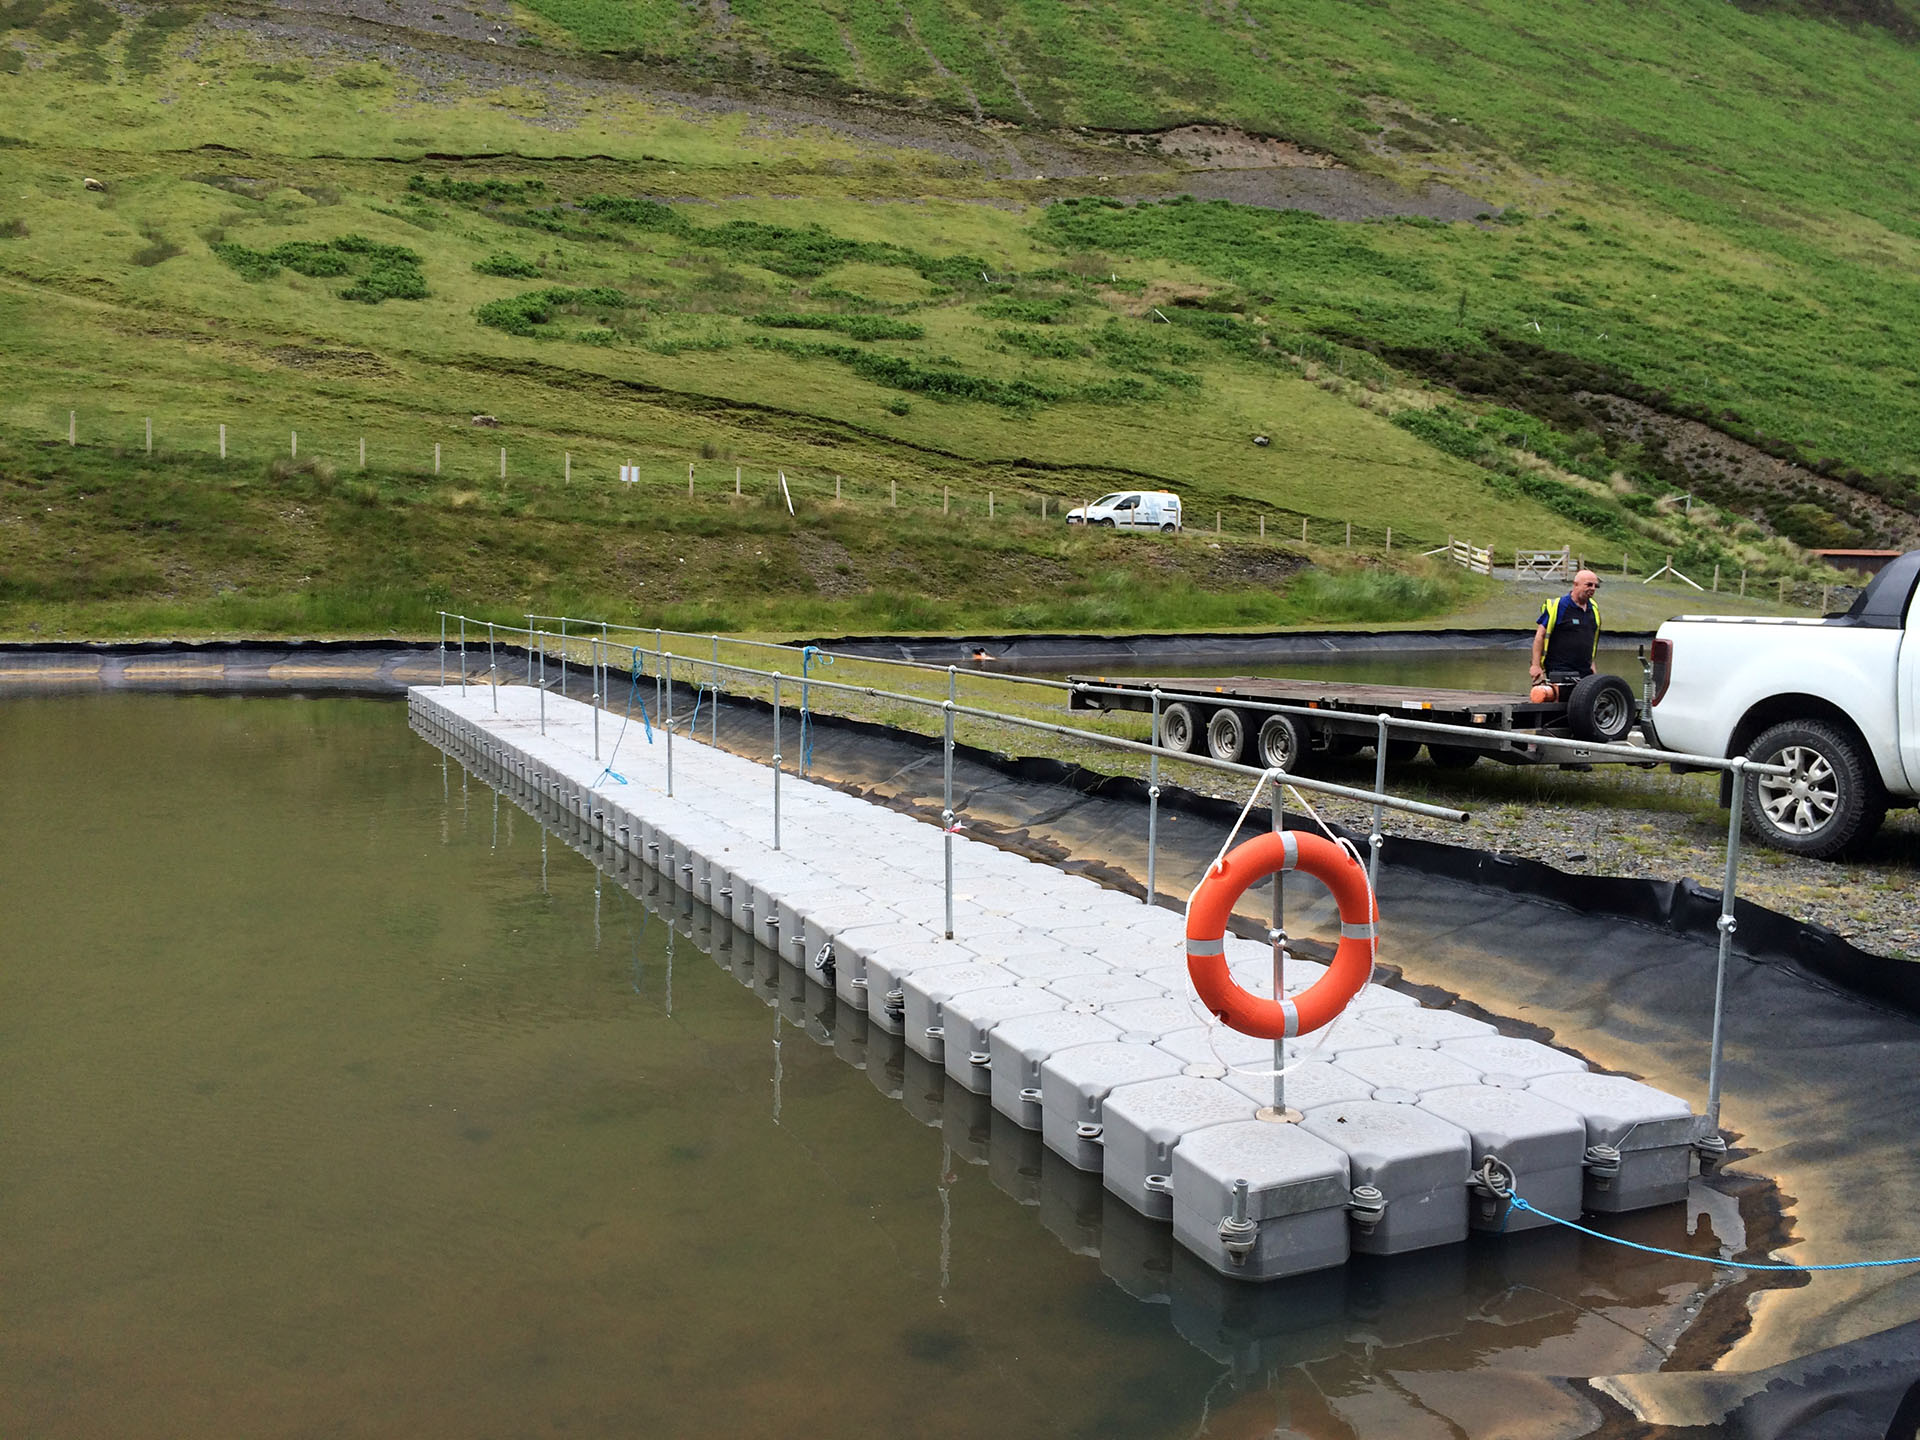 floating walkway with handrails at edge of lake